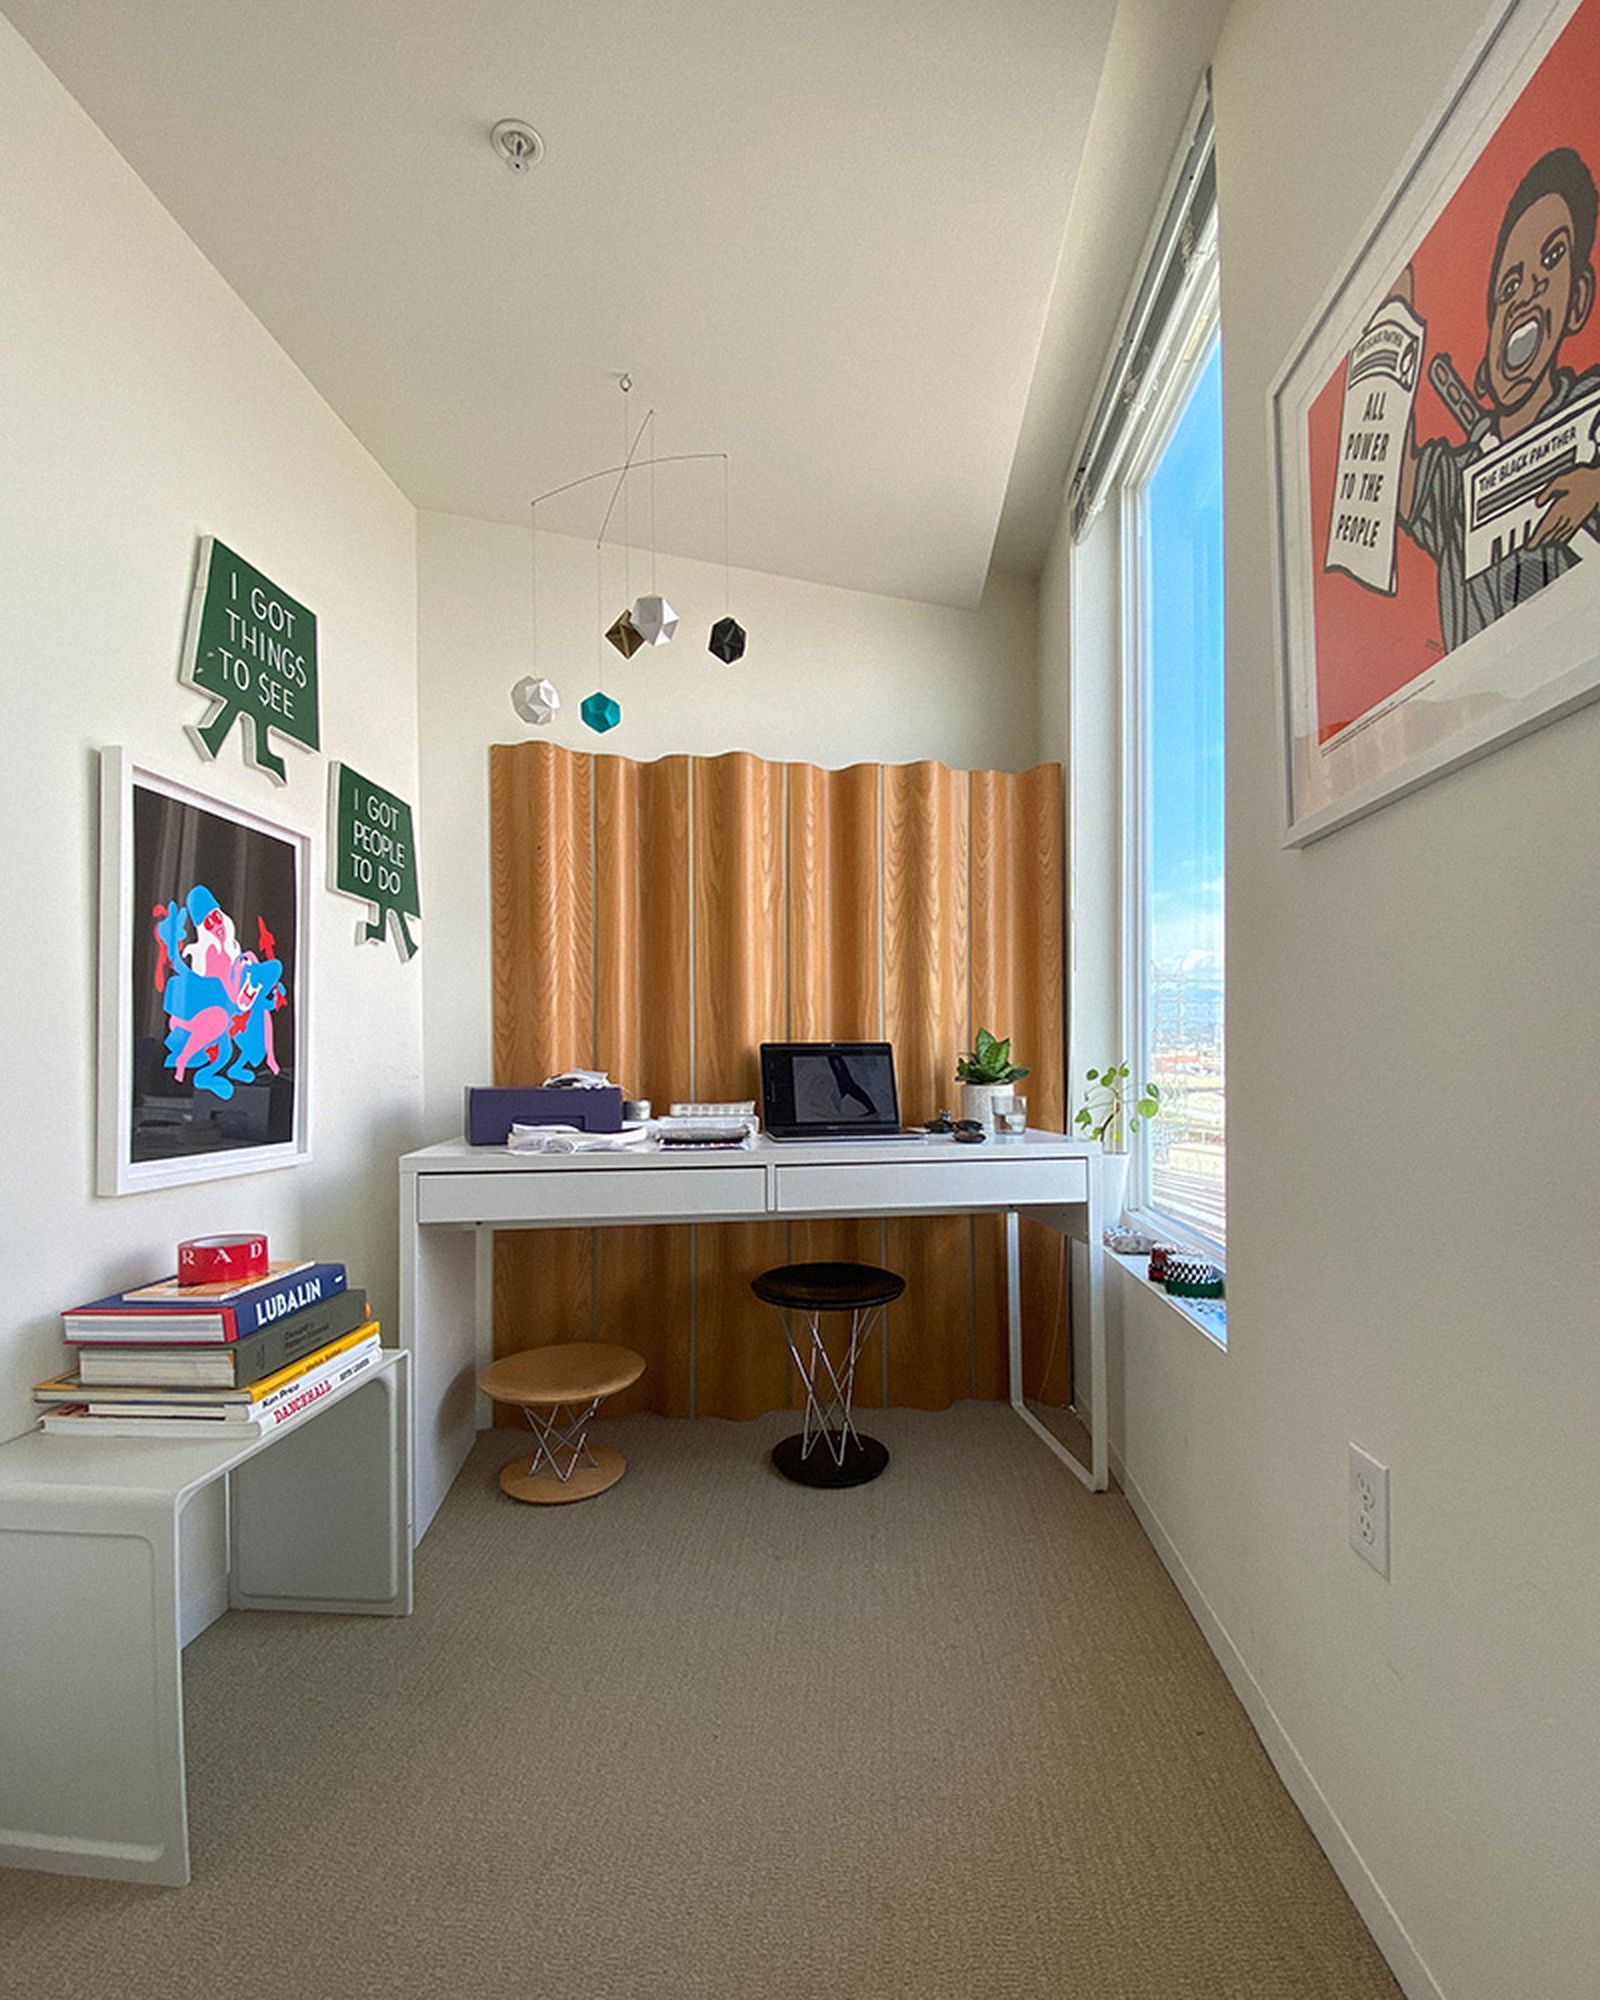 wfh-office-tour-look-inside-home-offices-omar-02